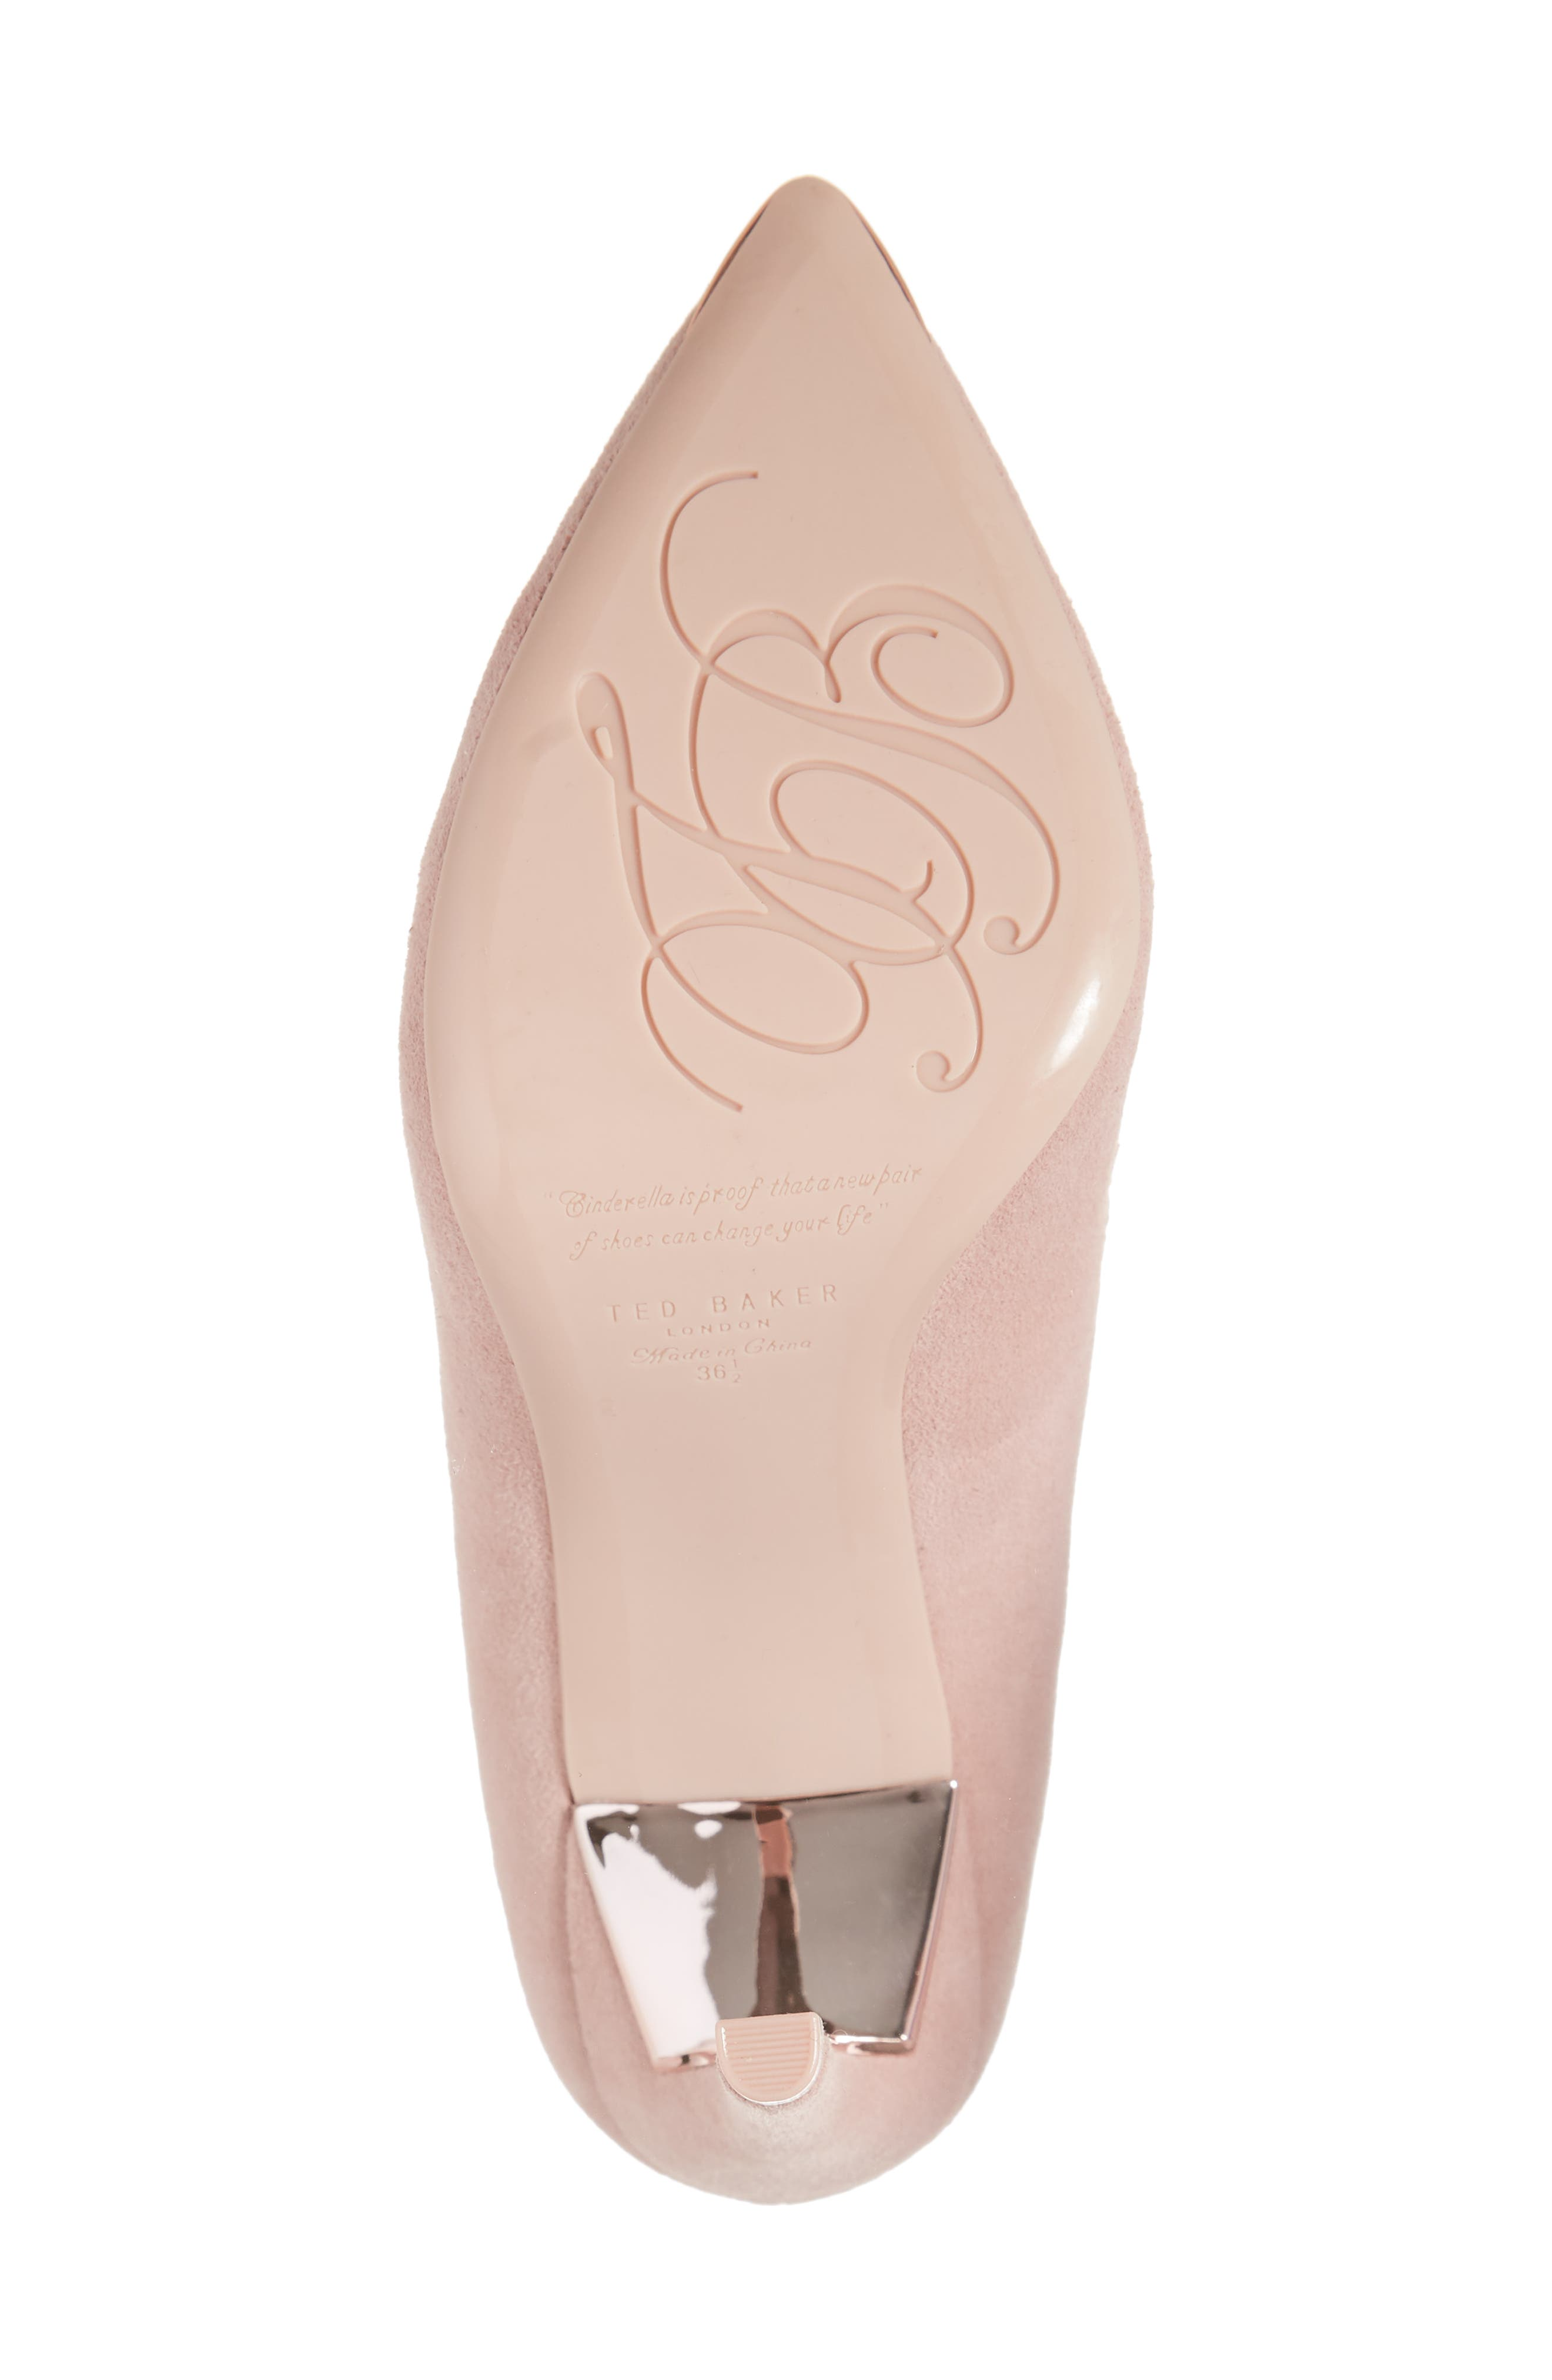 TED BAKER LONDON, Sloana Pointy Toe Pump, Alternate thumbnail 6, color, PINK BLOSSOM SUEDE